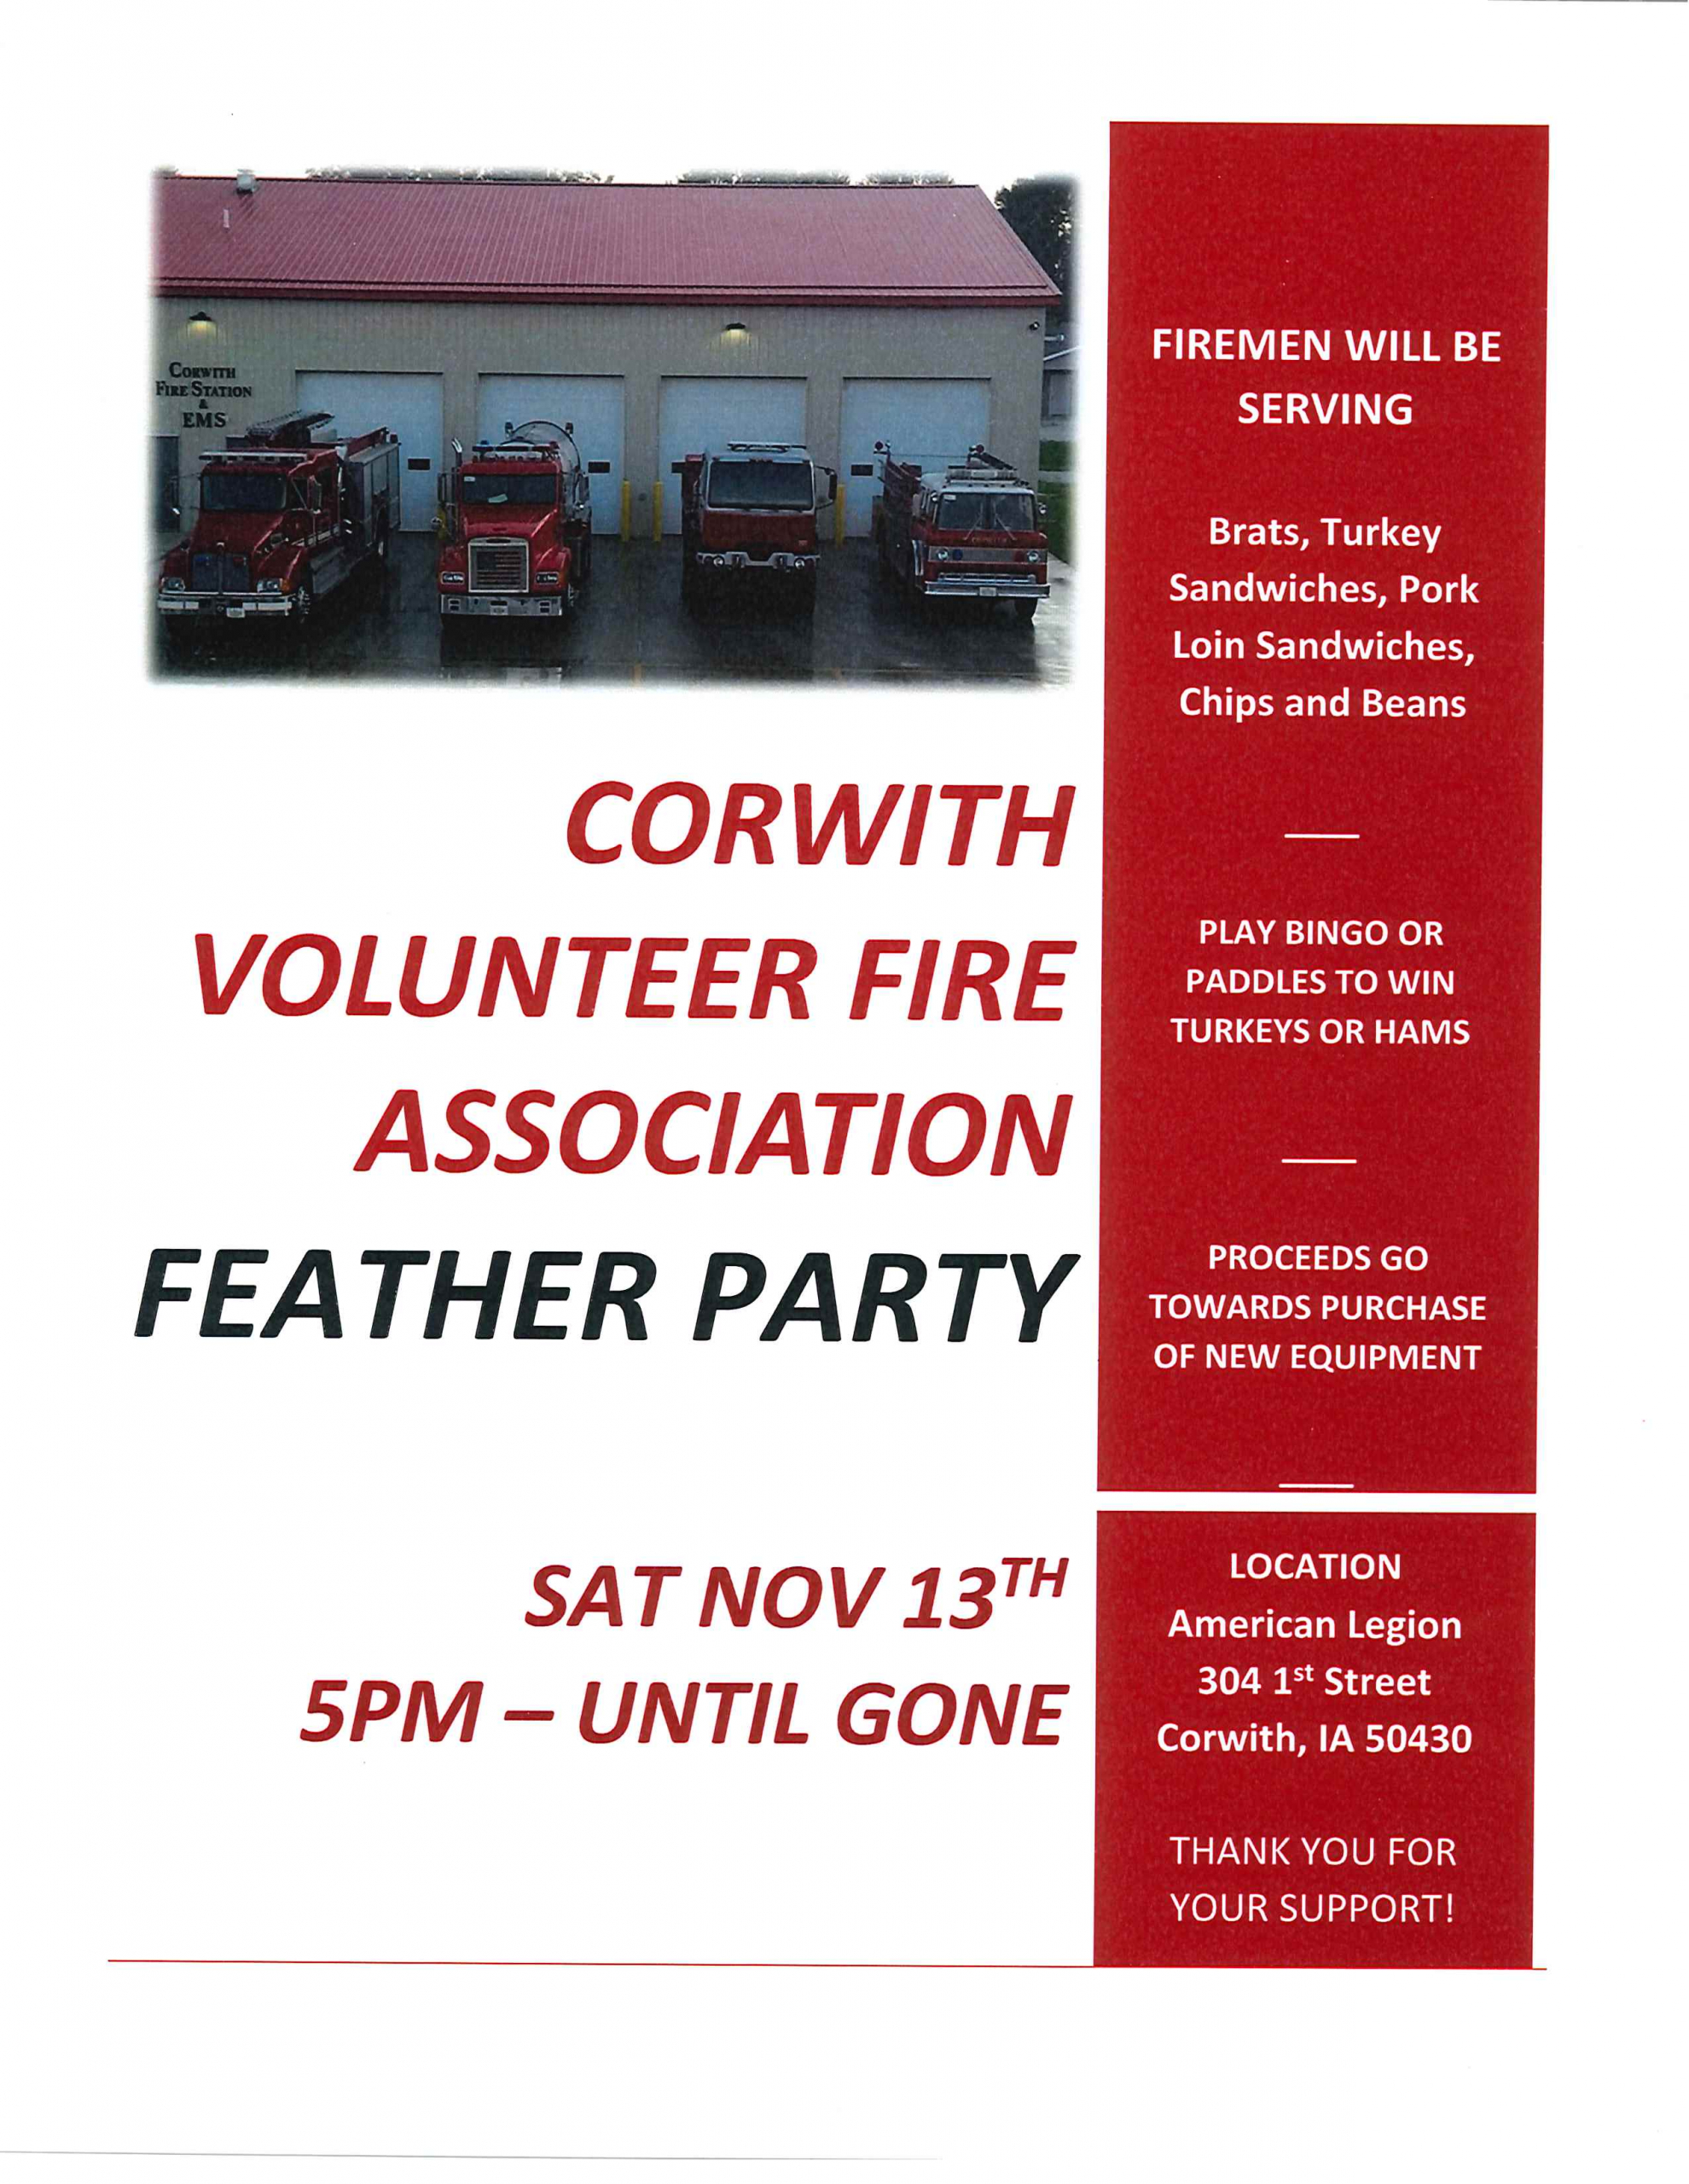 Corwith Volunteer Fire Association Feather Party